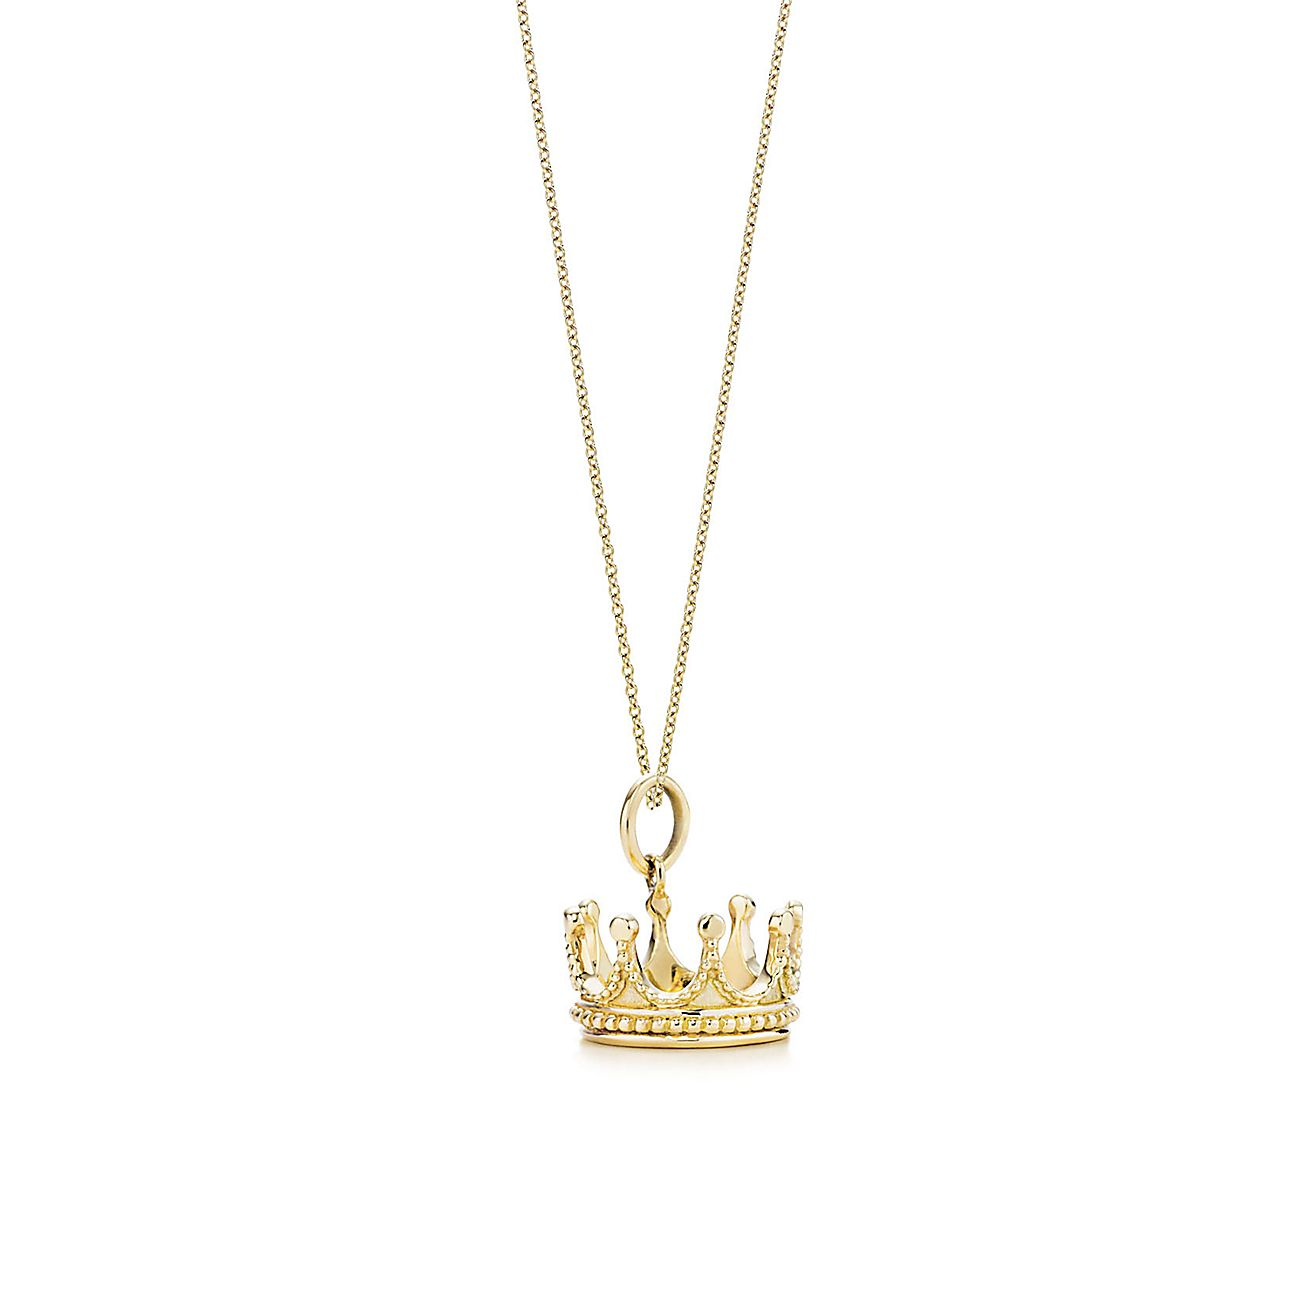 Crown charm and chain